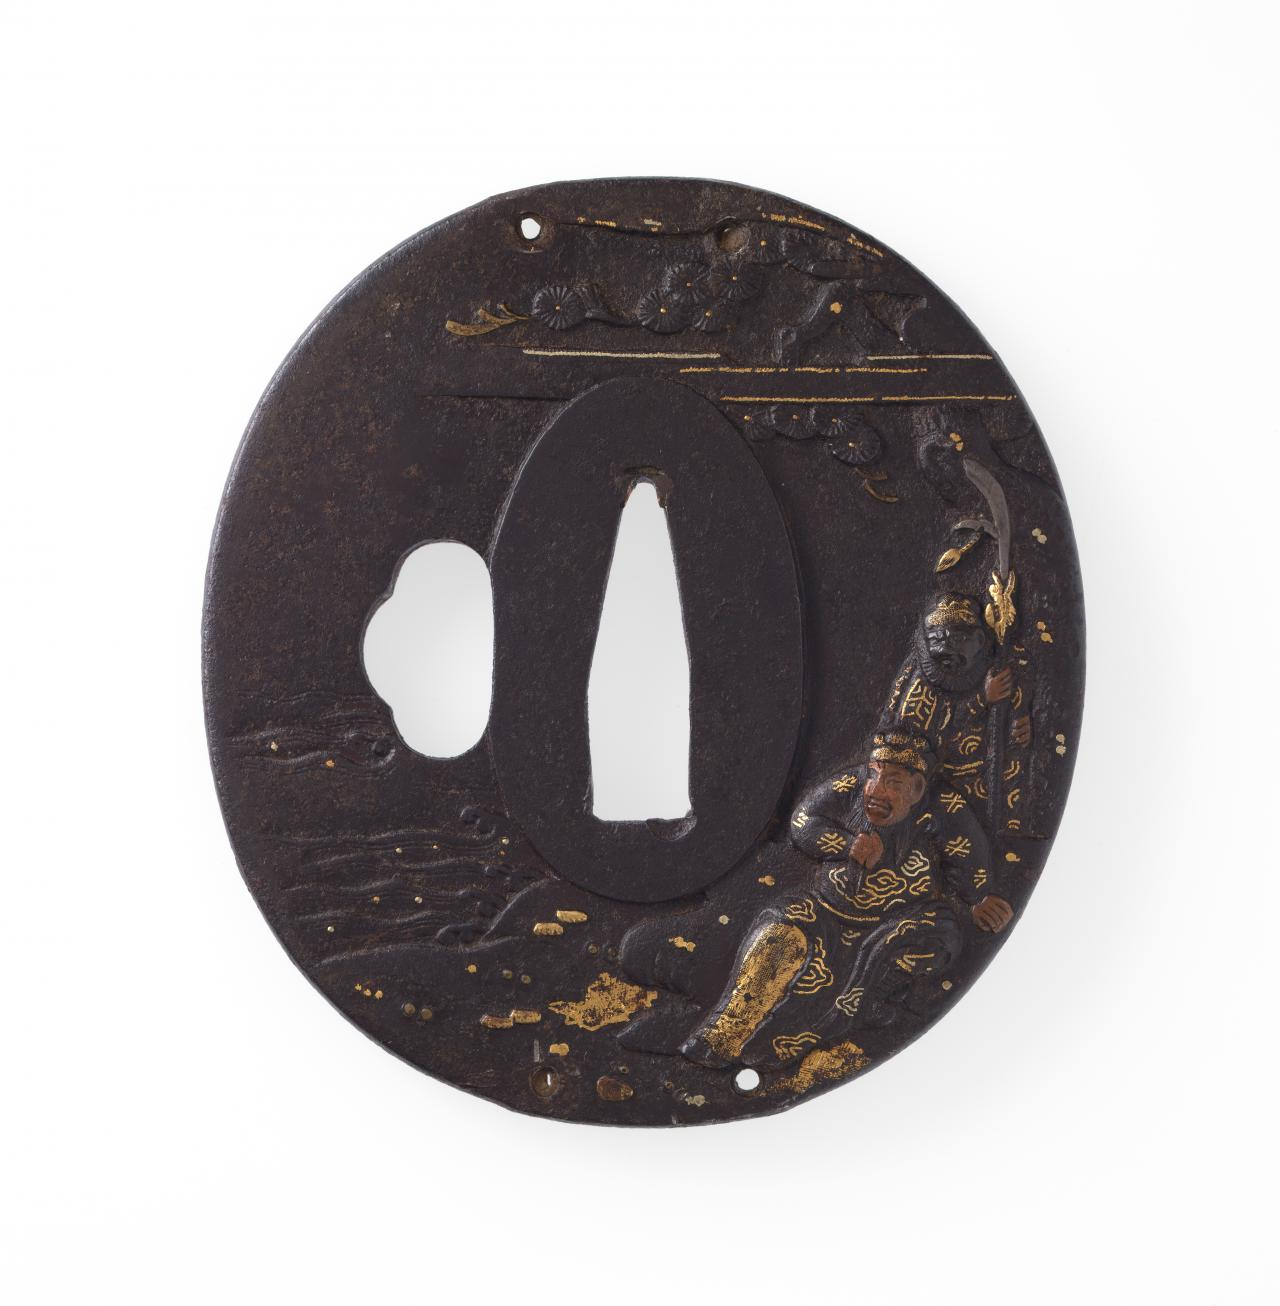 Sword guard with two warriors in landscape design